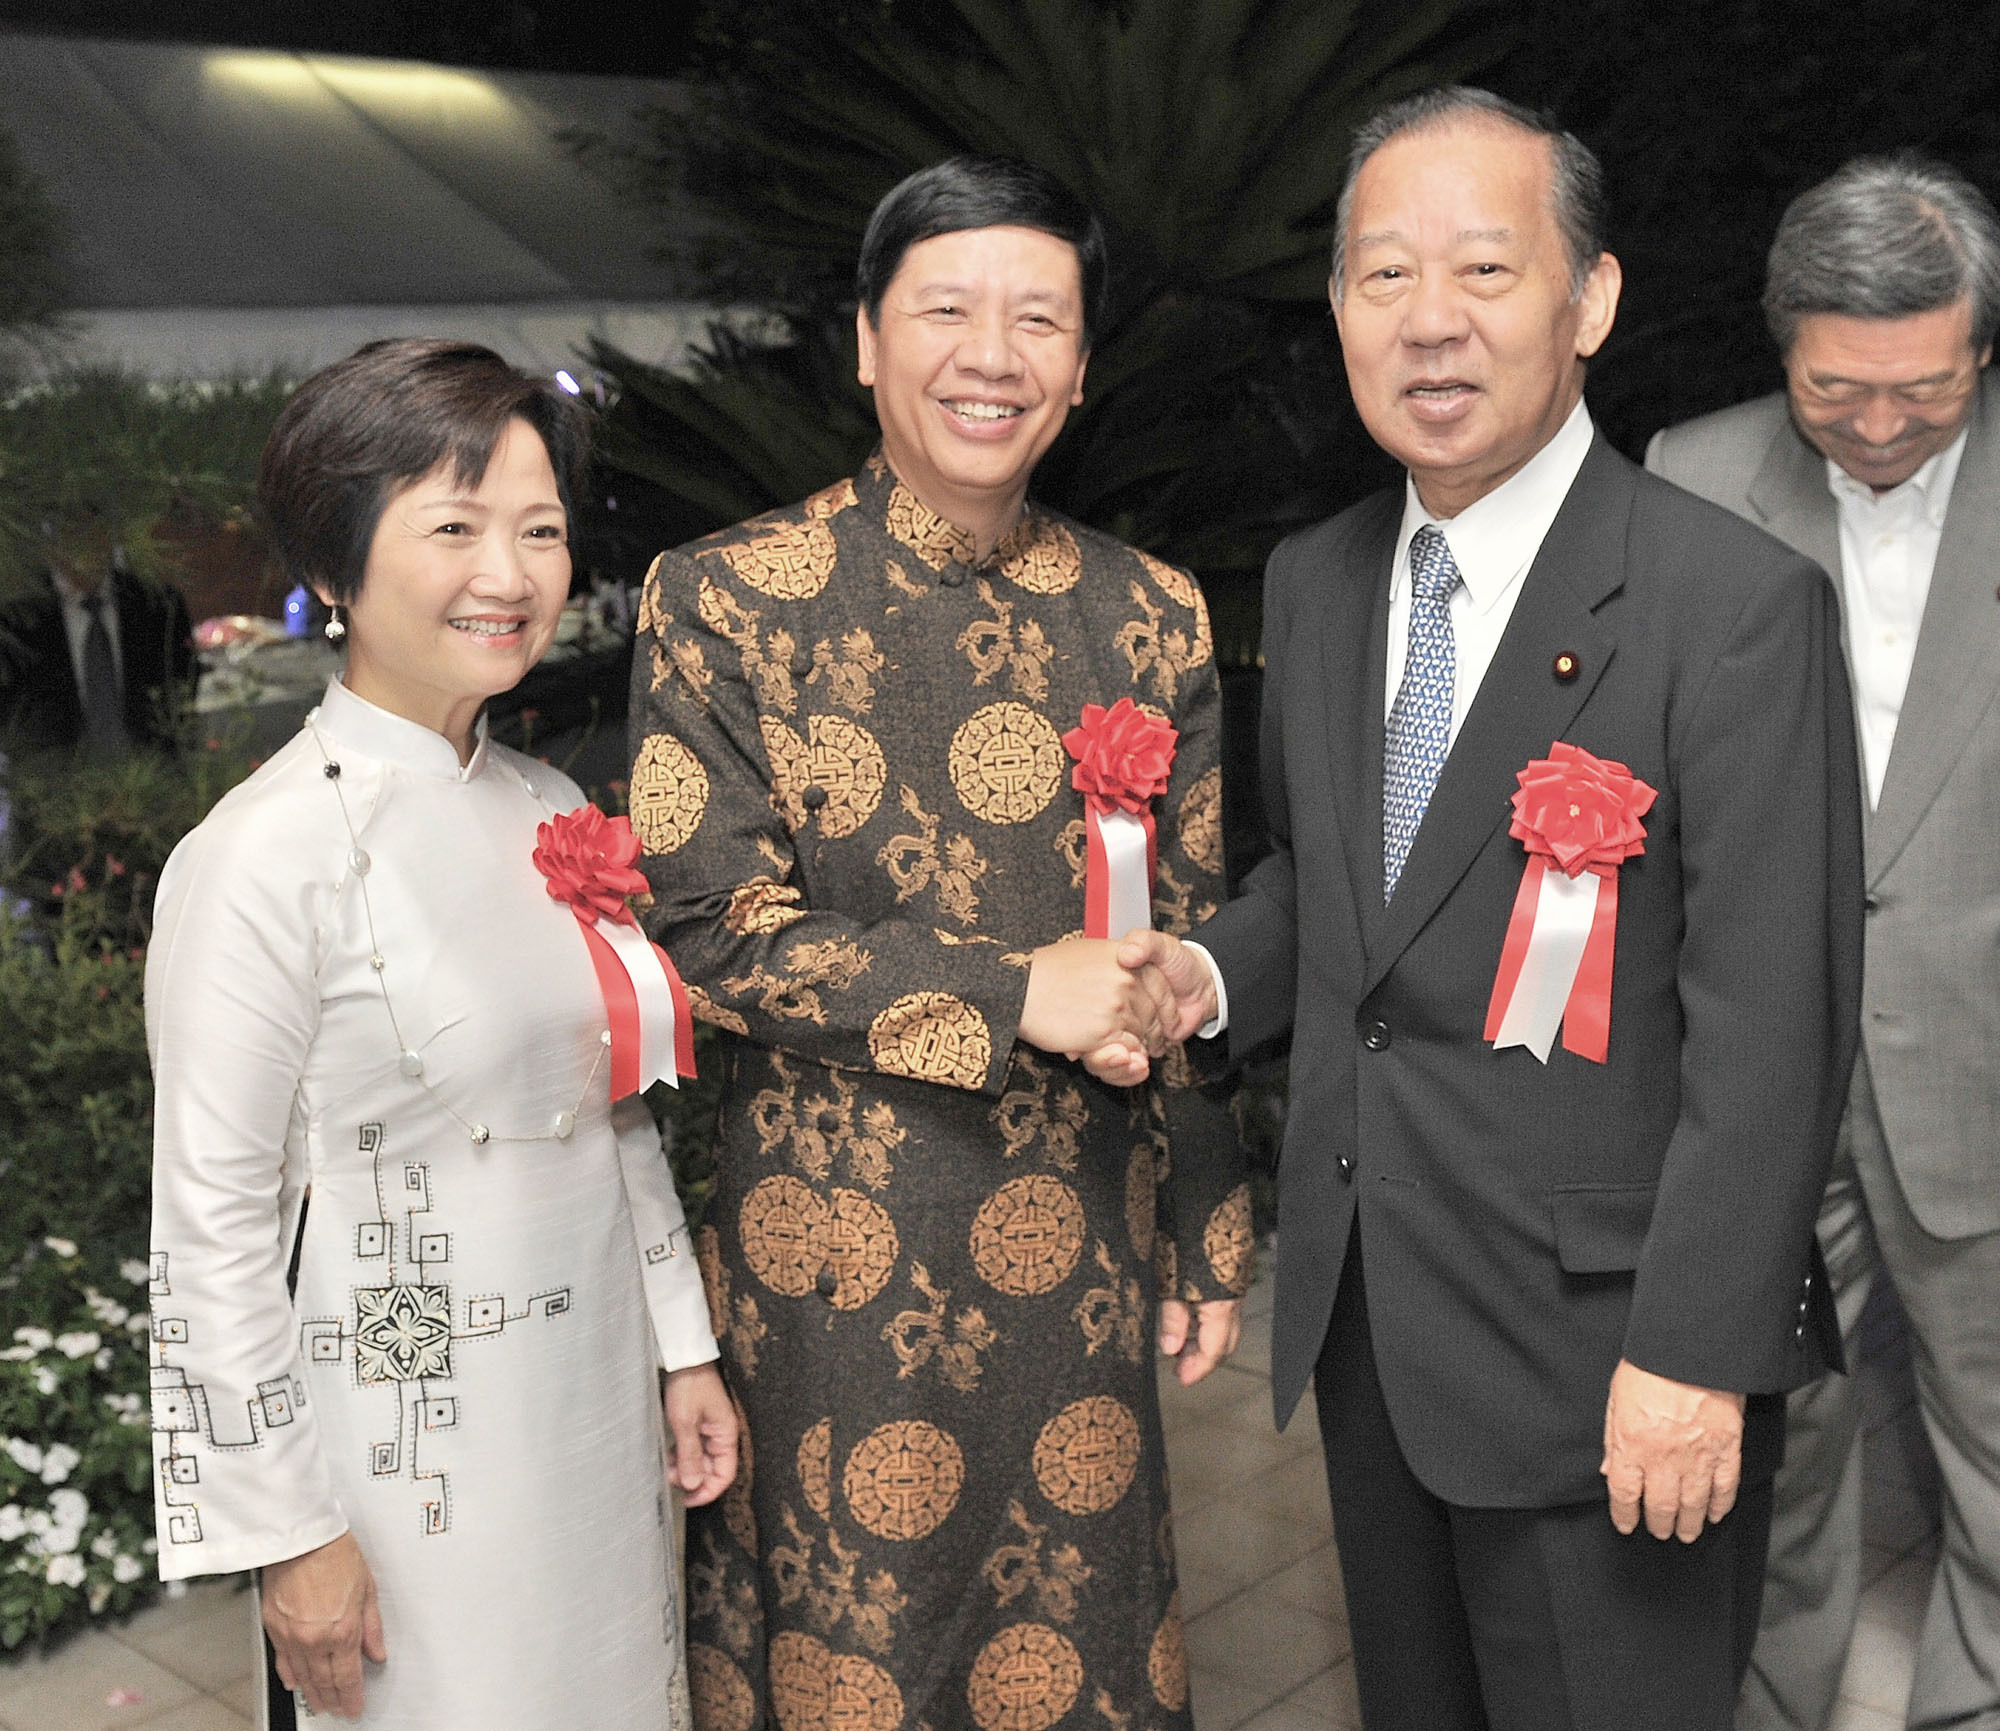 Vietnamese Ambassador Nguyen Quoc Coung (center) and his wife Hoang Thi Minh Ha welcome Secretary-General of the Liberal Democratic Party and Chairman of the Japan-Vietnam Parliamentary Friendship League Toshihiro Nikai during a reception celebrating the 71st Anniversary of Vietnam's National Day at the embassy in Tokyo on August 31. | YOSHIAKI MIURA